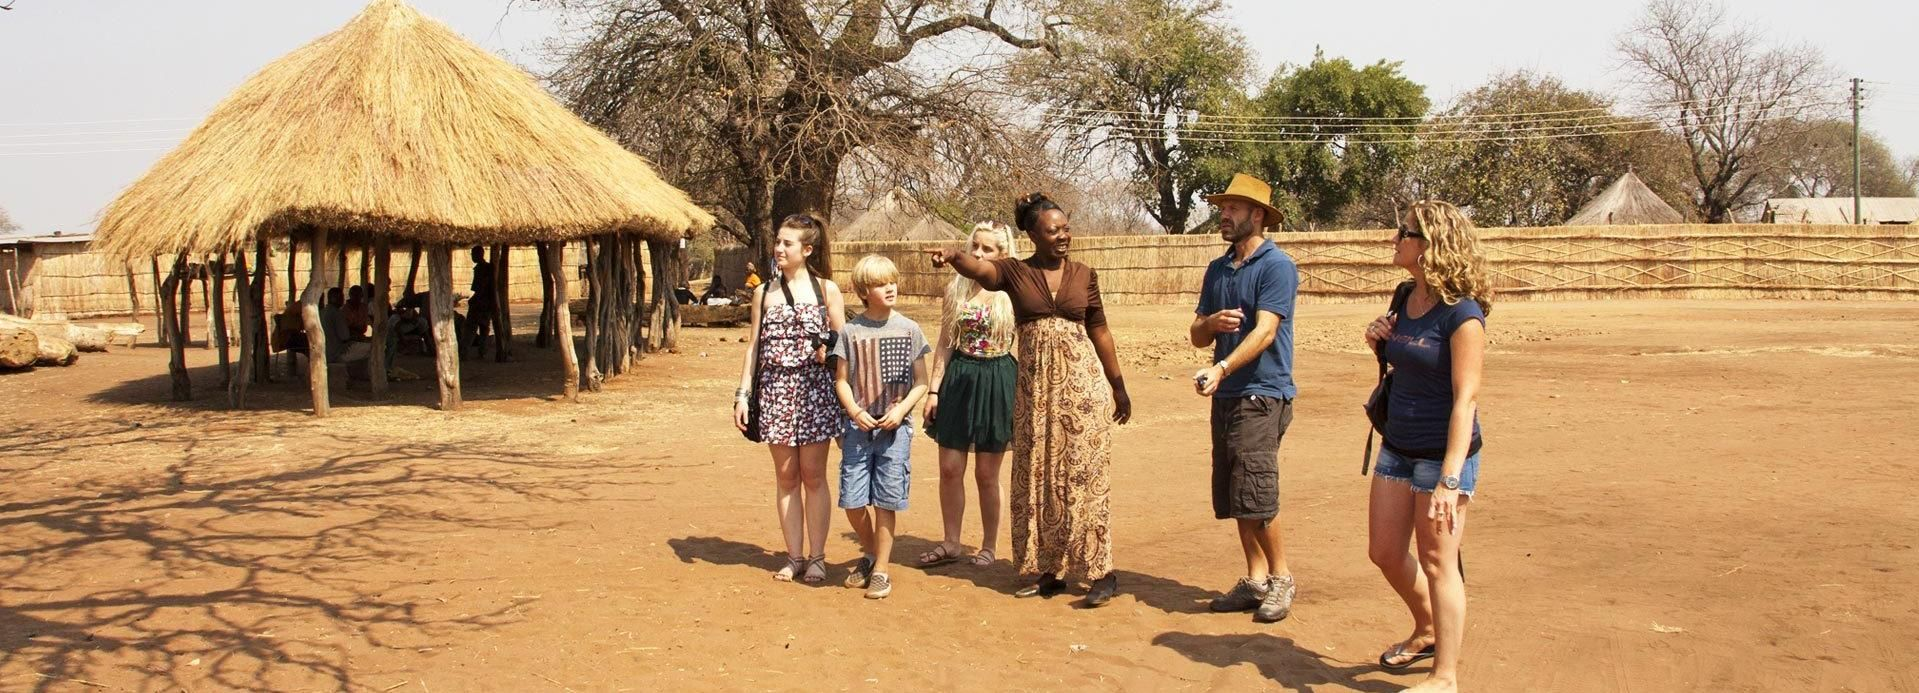 Victoria Falls: Full-Day Tour with Dinner and Cultural Show